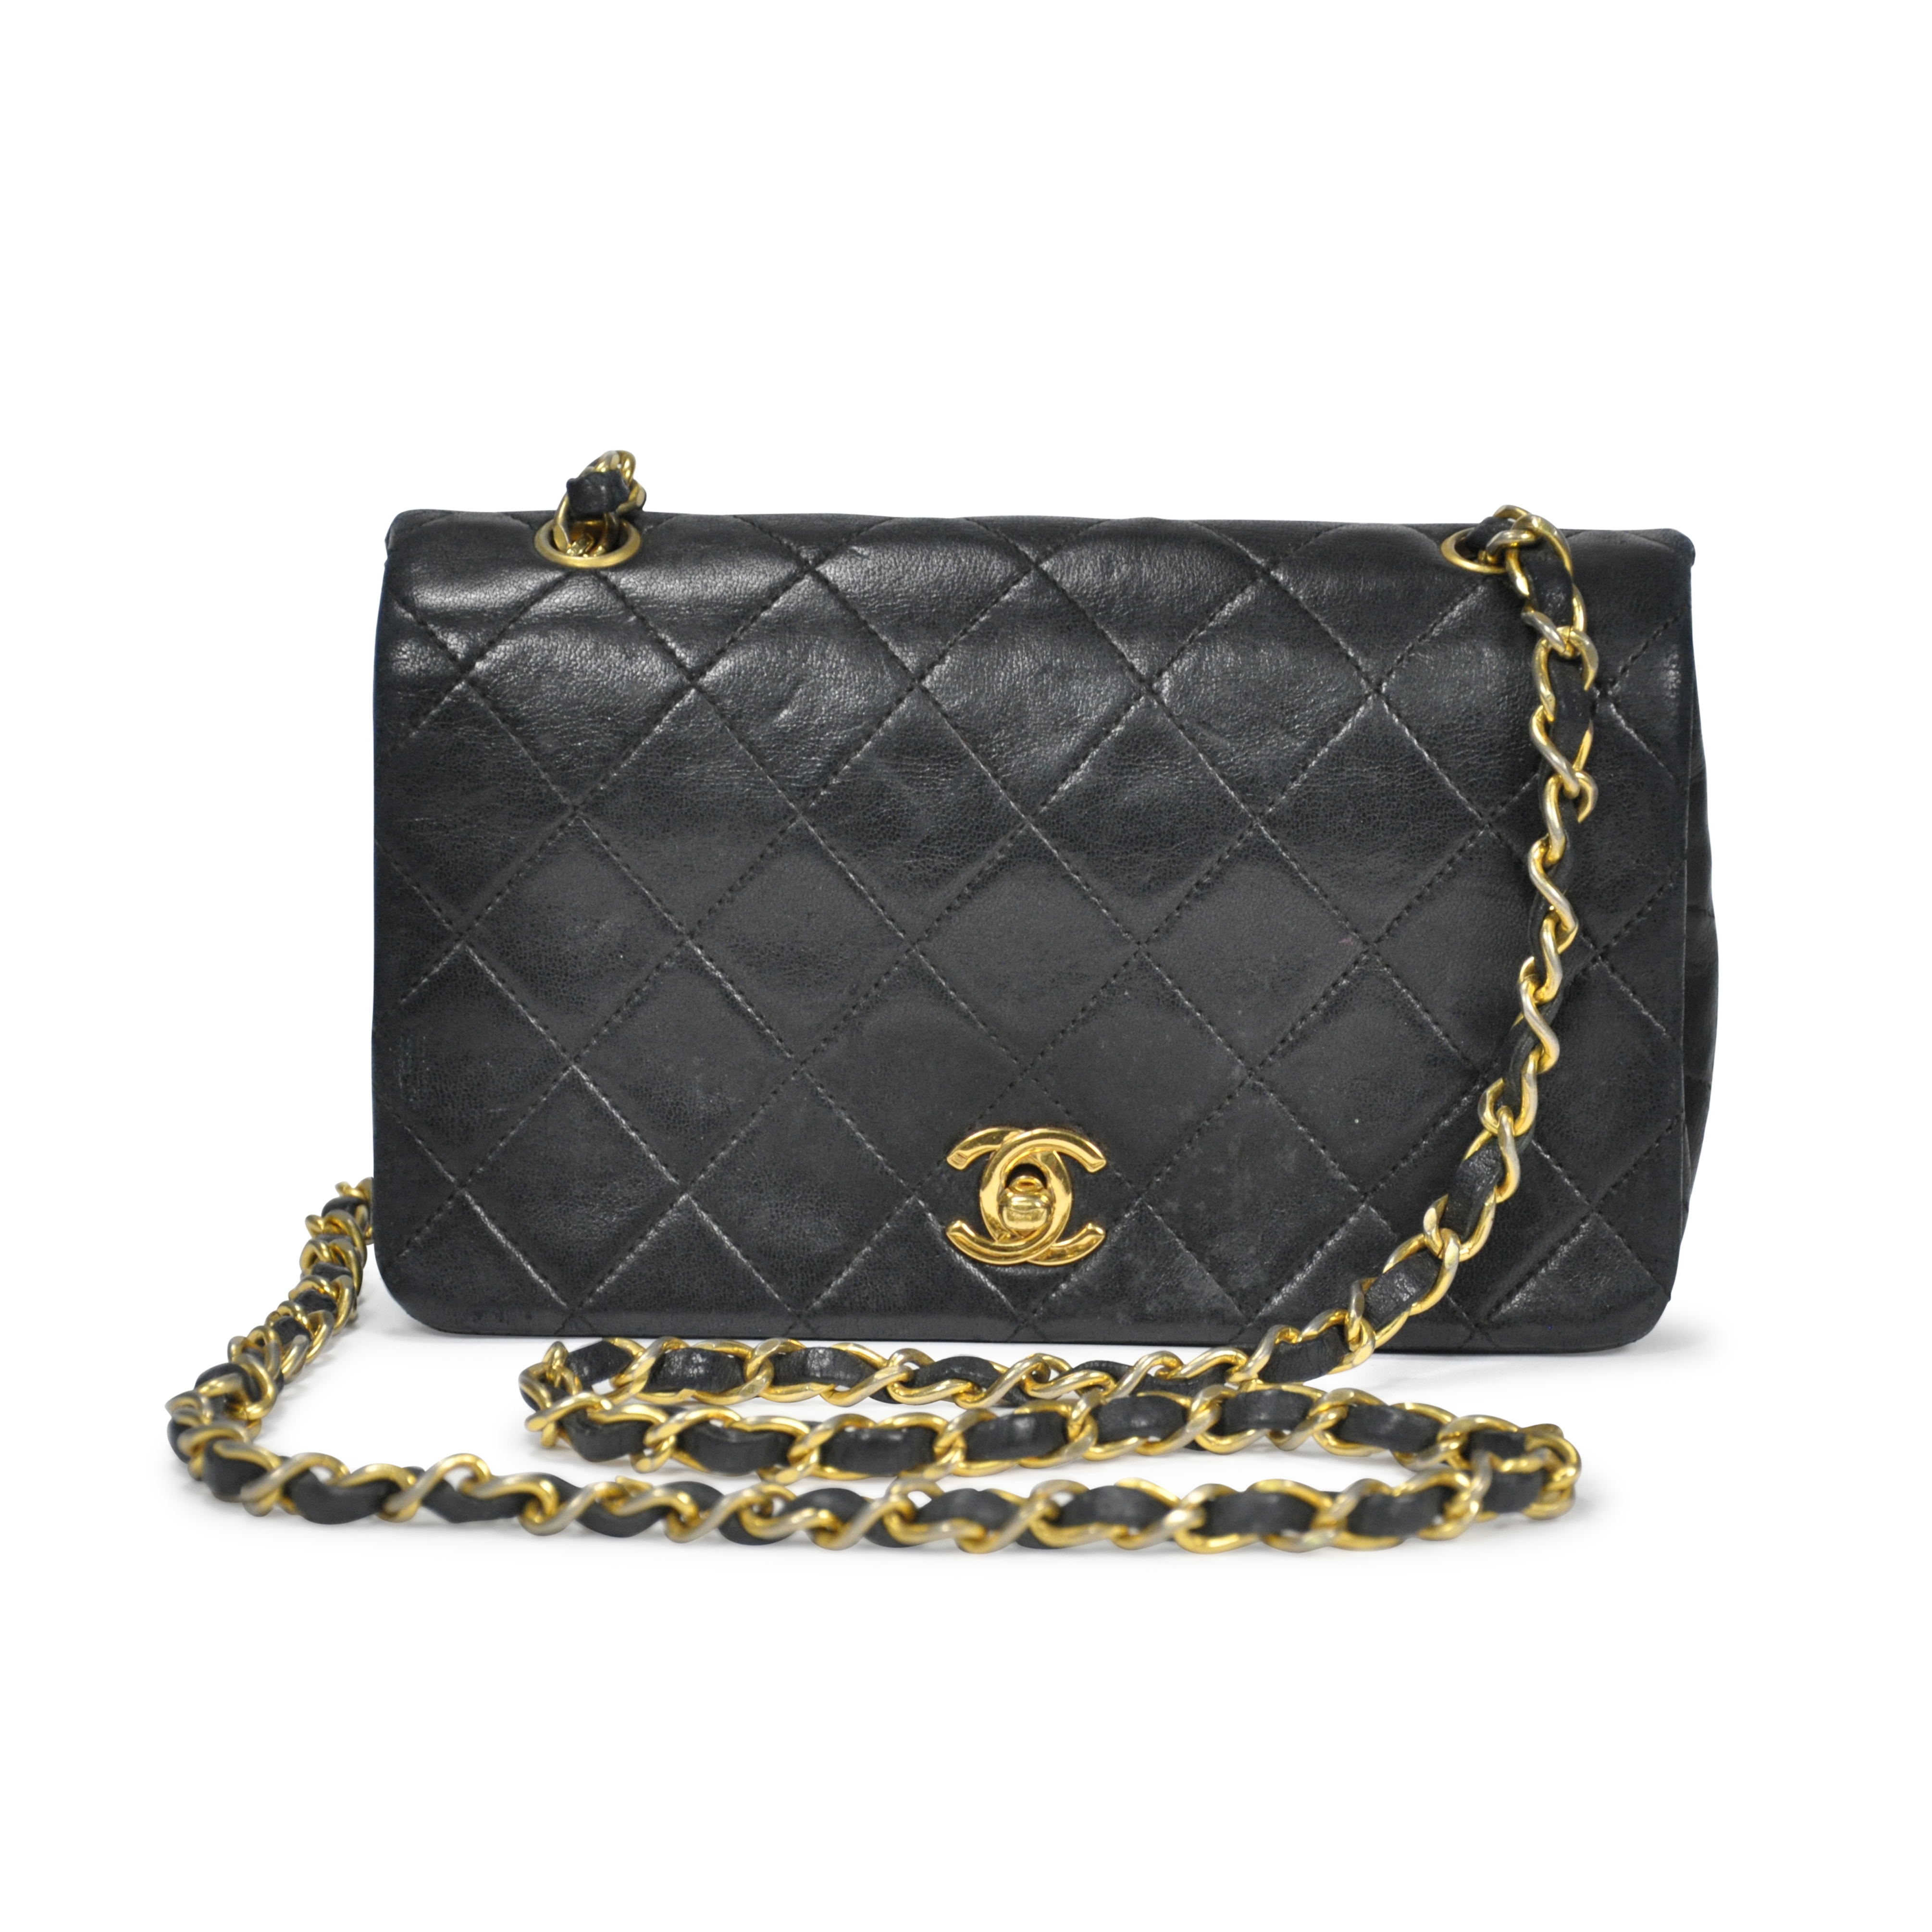 5ea29140b337 Authentic Vintage Chanel Mini Single Flap Crossbody (PSS-201-00004) | THE  FIFTH COLLECTION